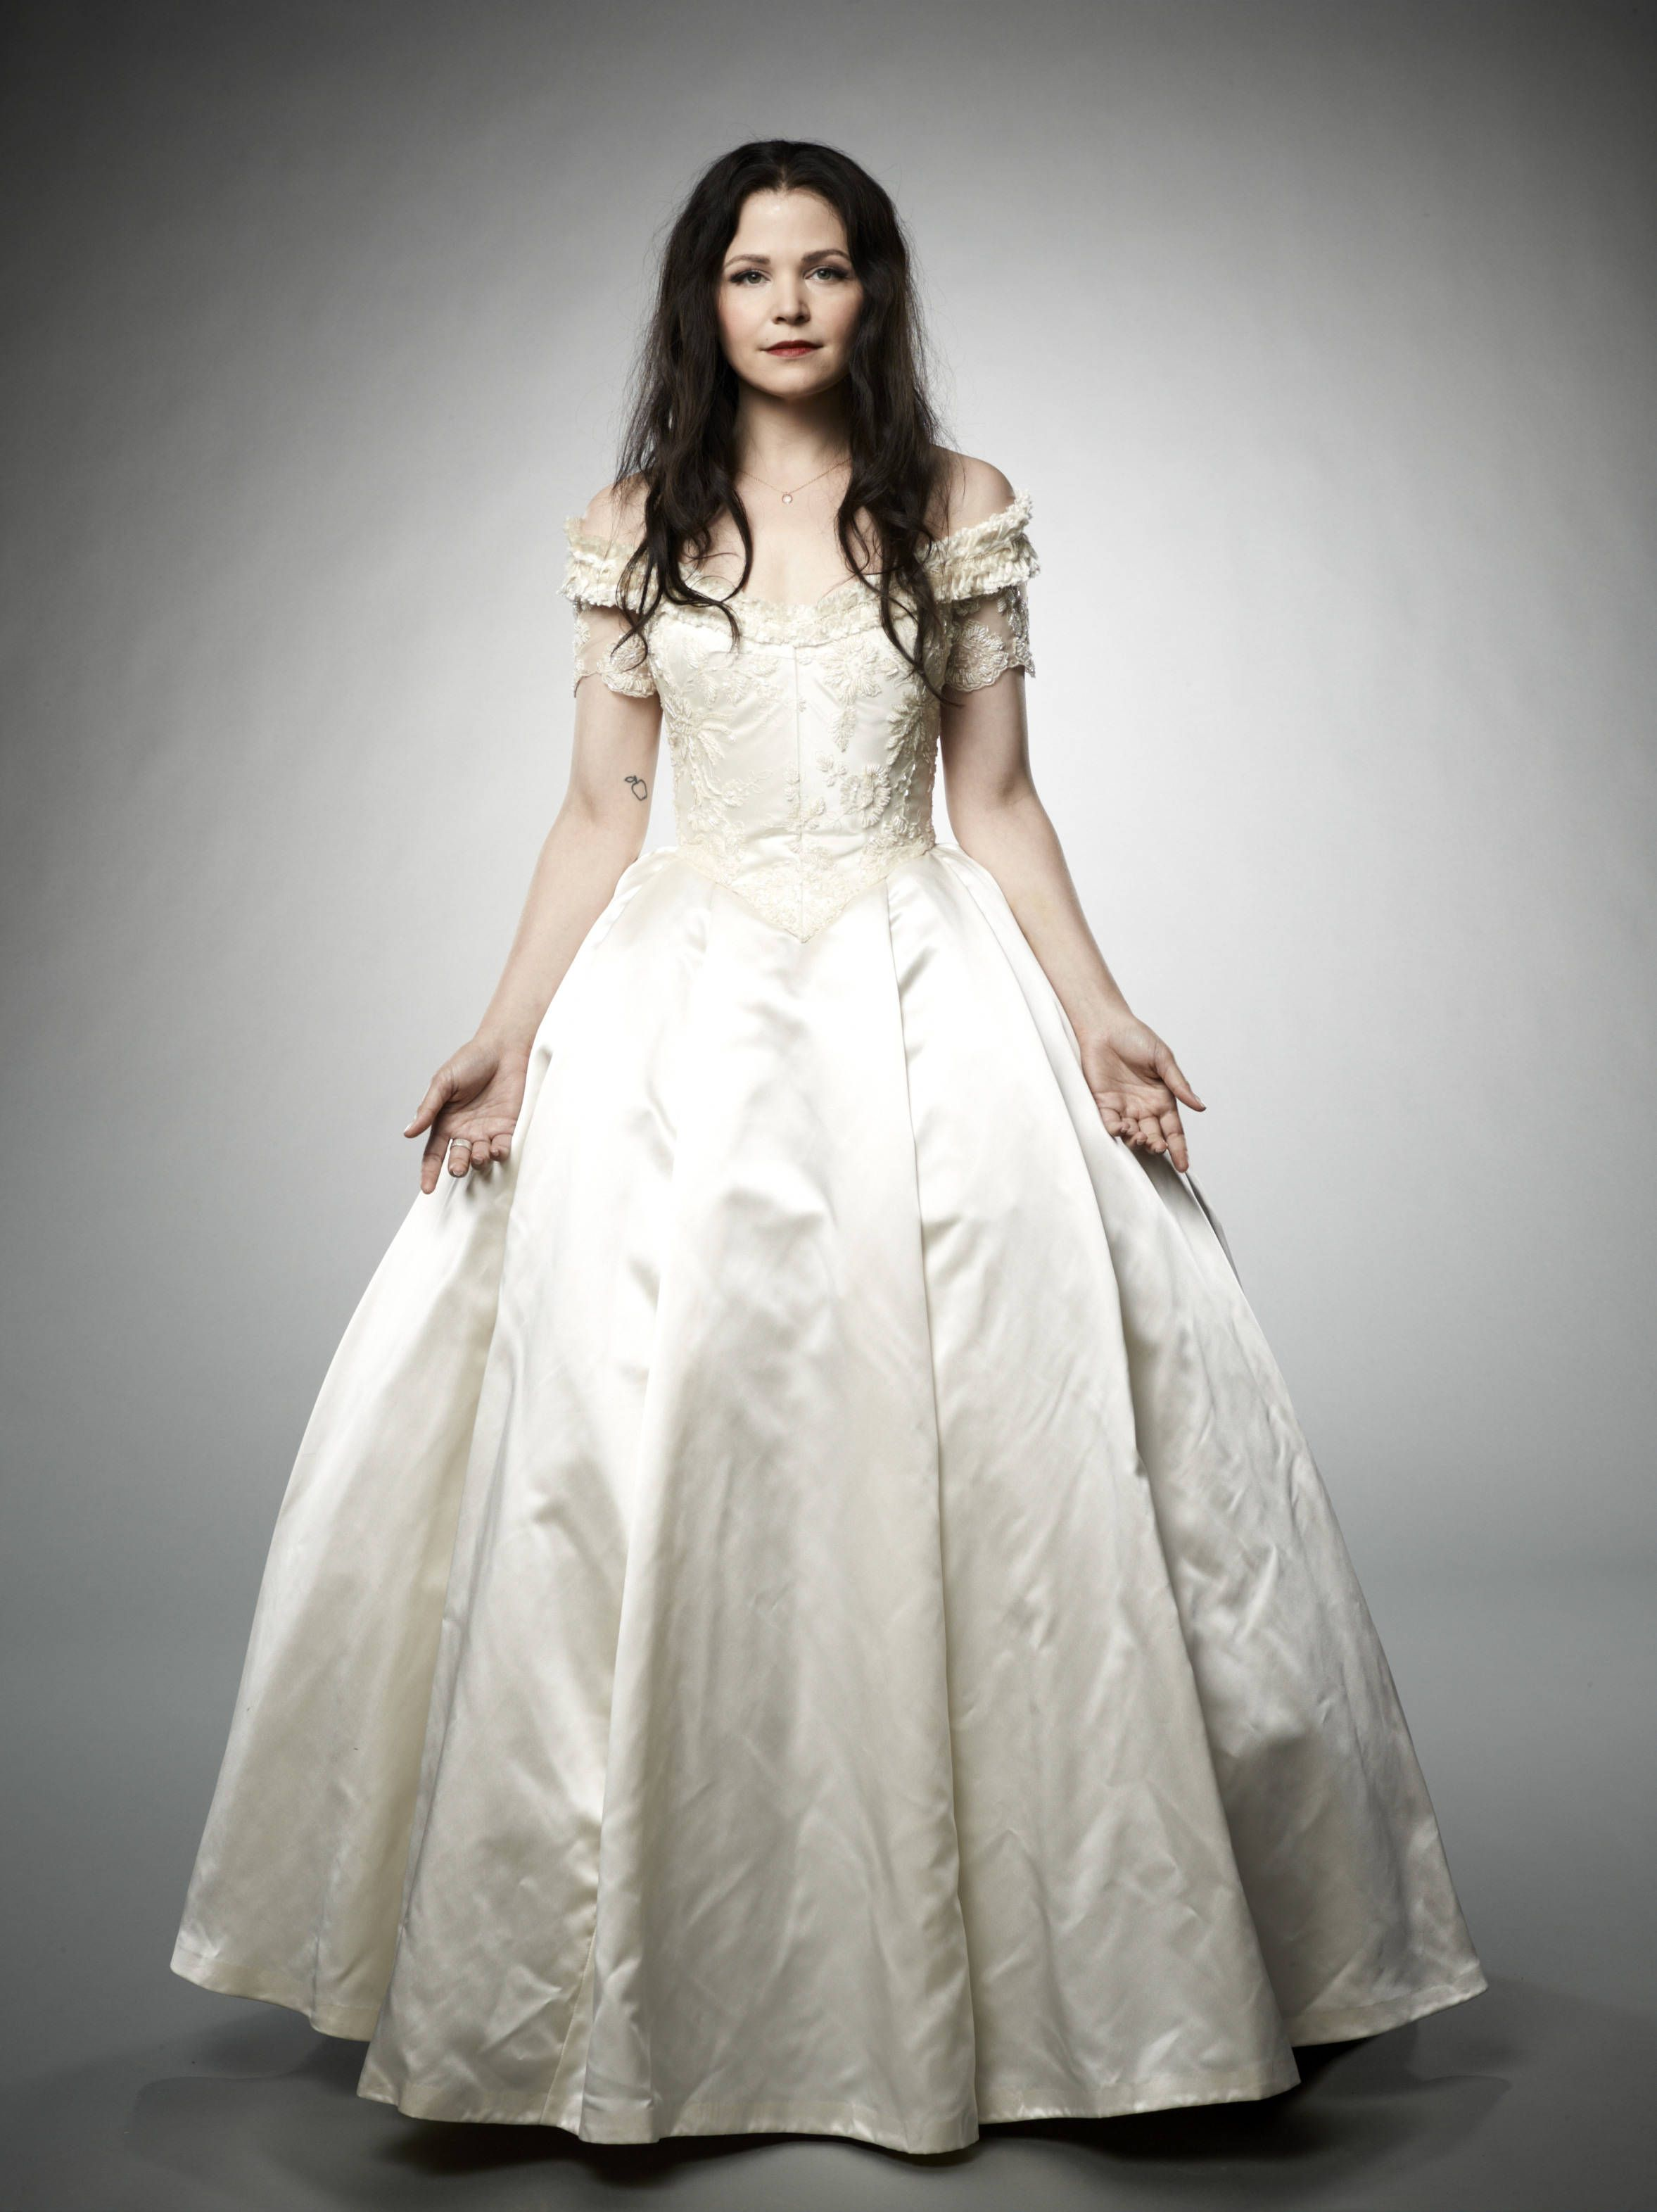 Snow Wears A White Satin Gown All Of The Exquisite Costumes Once Upon Time Are Designed By Eduardo Castro